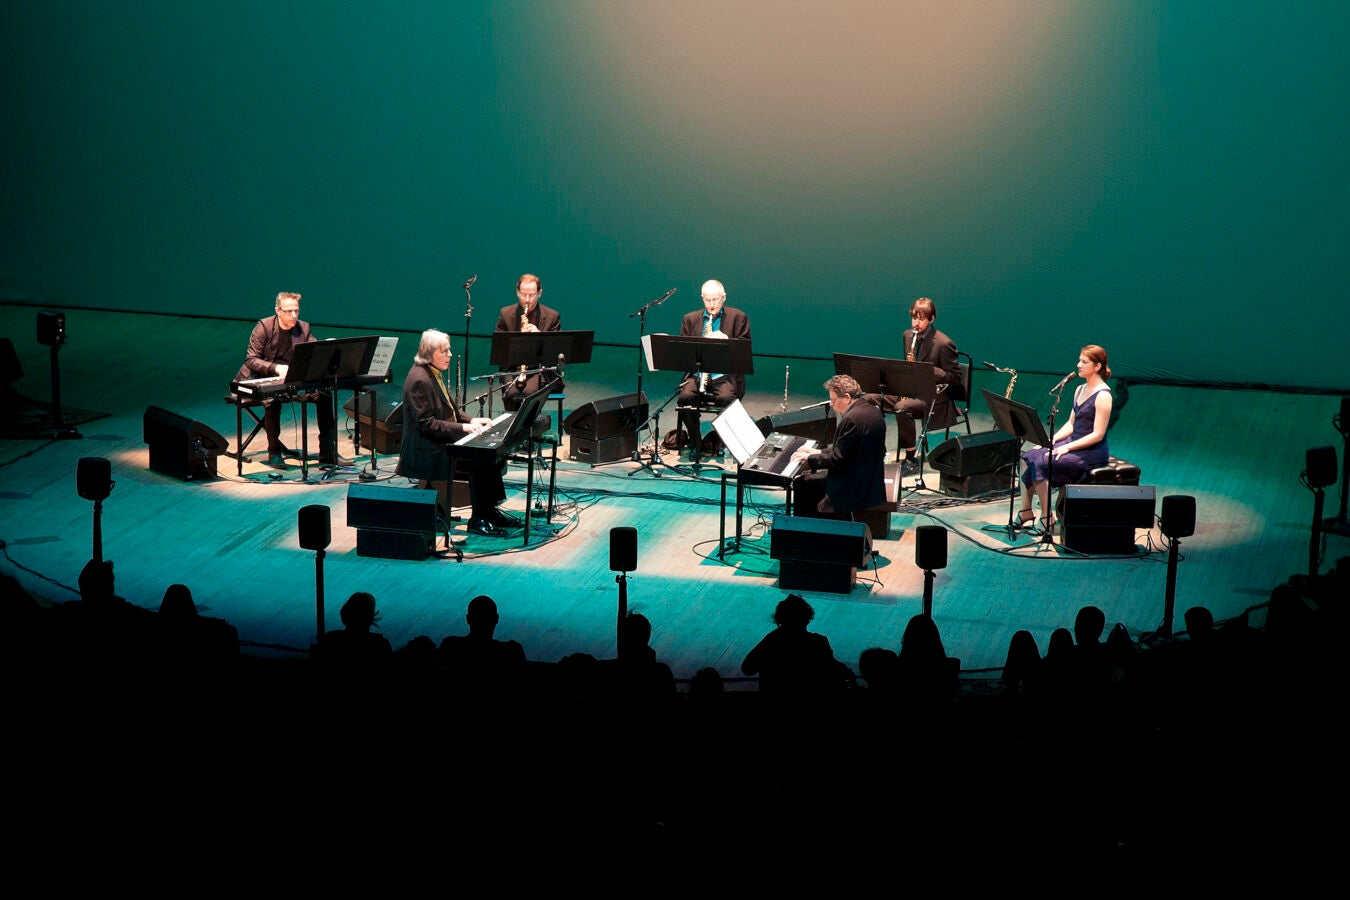 Ensemble onstage